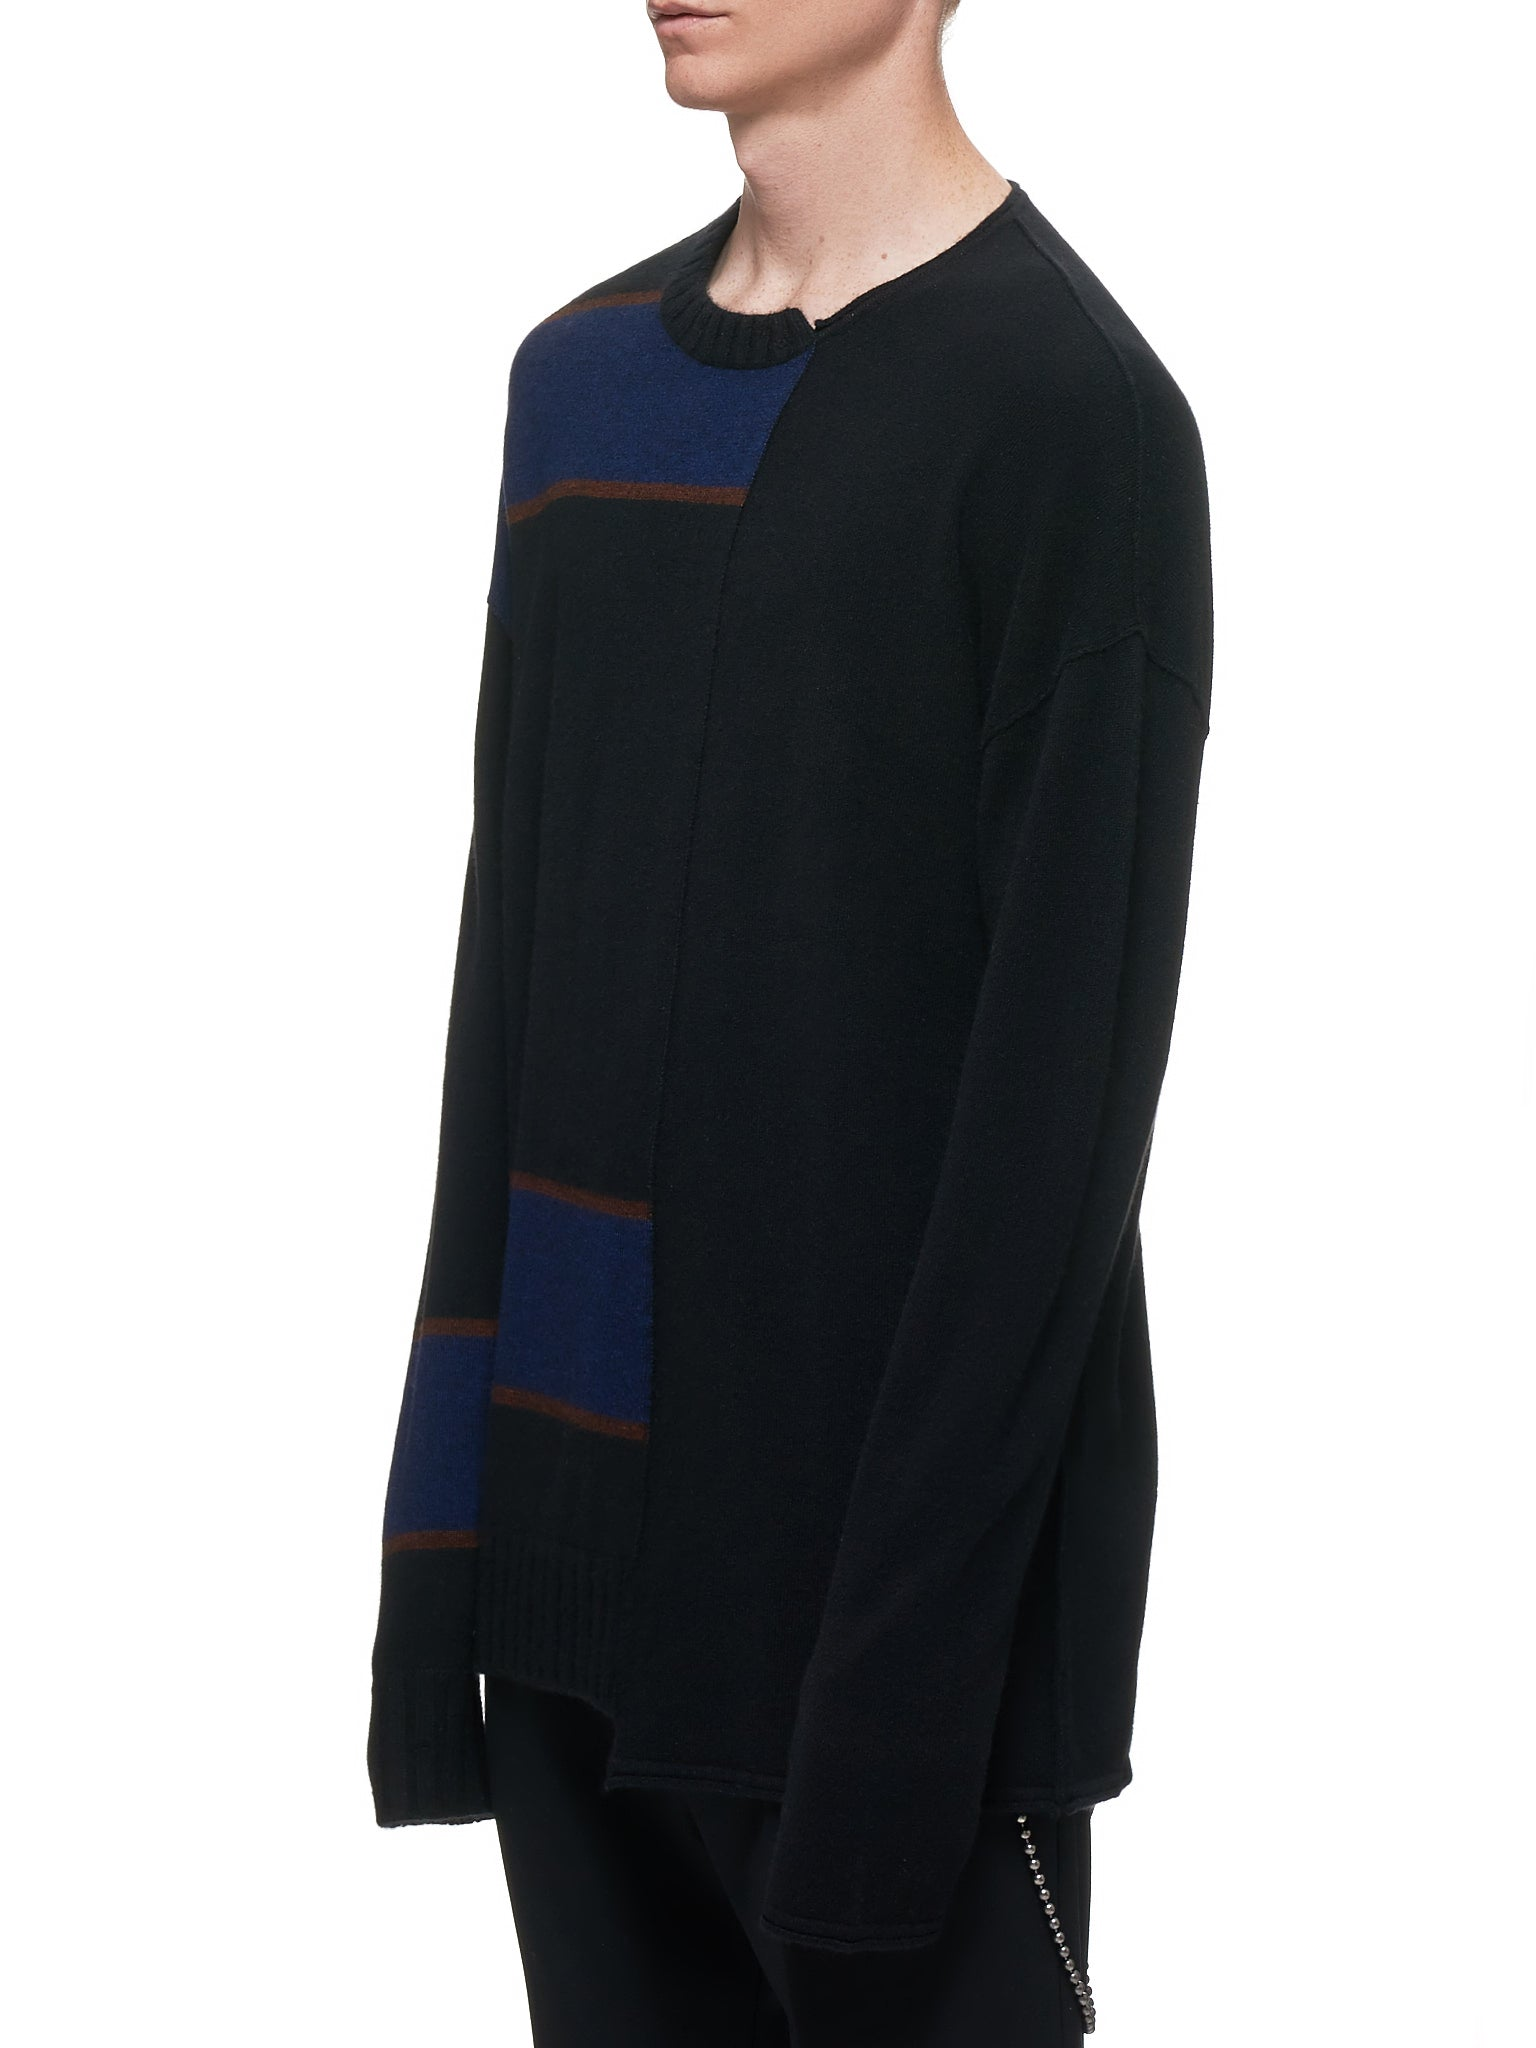 Ziggy Chen Sweater - Hlorenzo Side